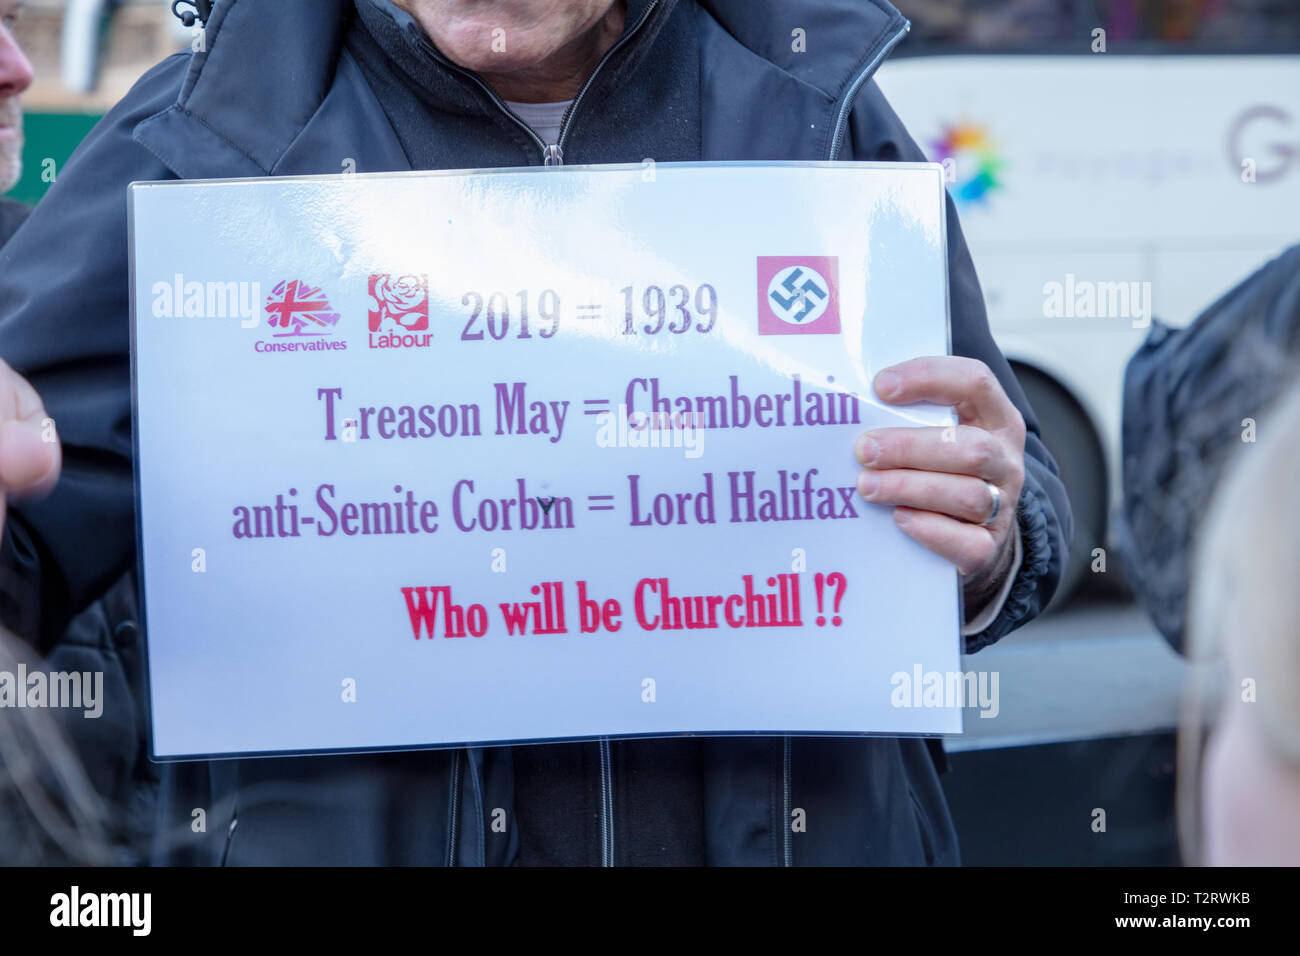 Brexiteer comparing Theresa May with Chamberlain and treason and Jeremy Corbyn with Lord Halifax and anti-Semitism, asking Who will be Churchill. - Stock Image